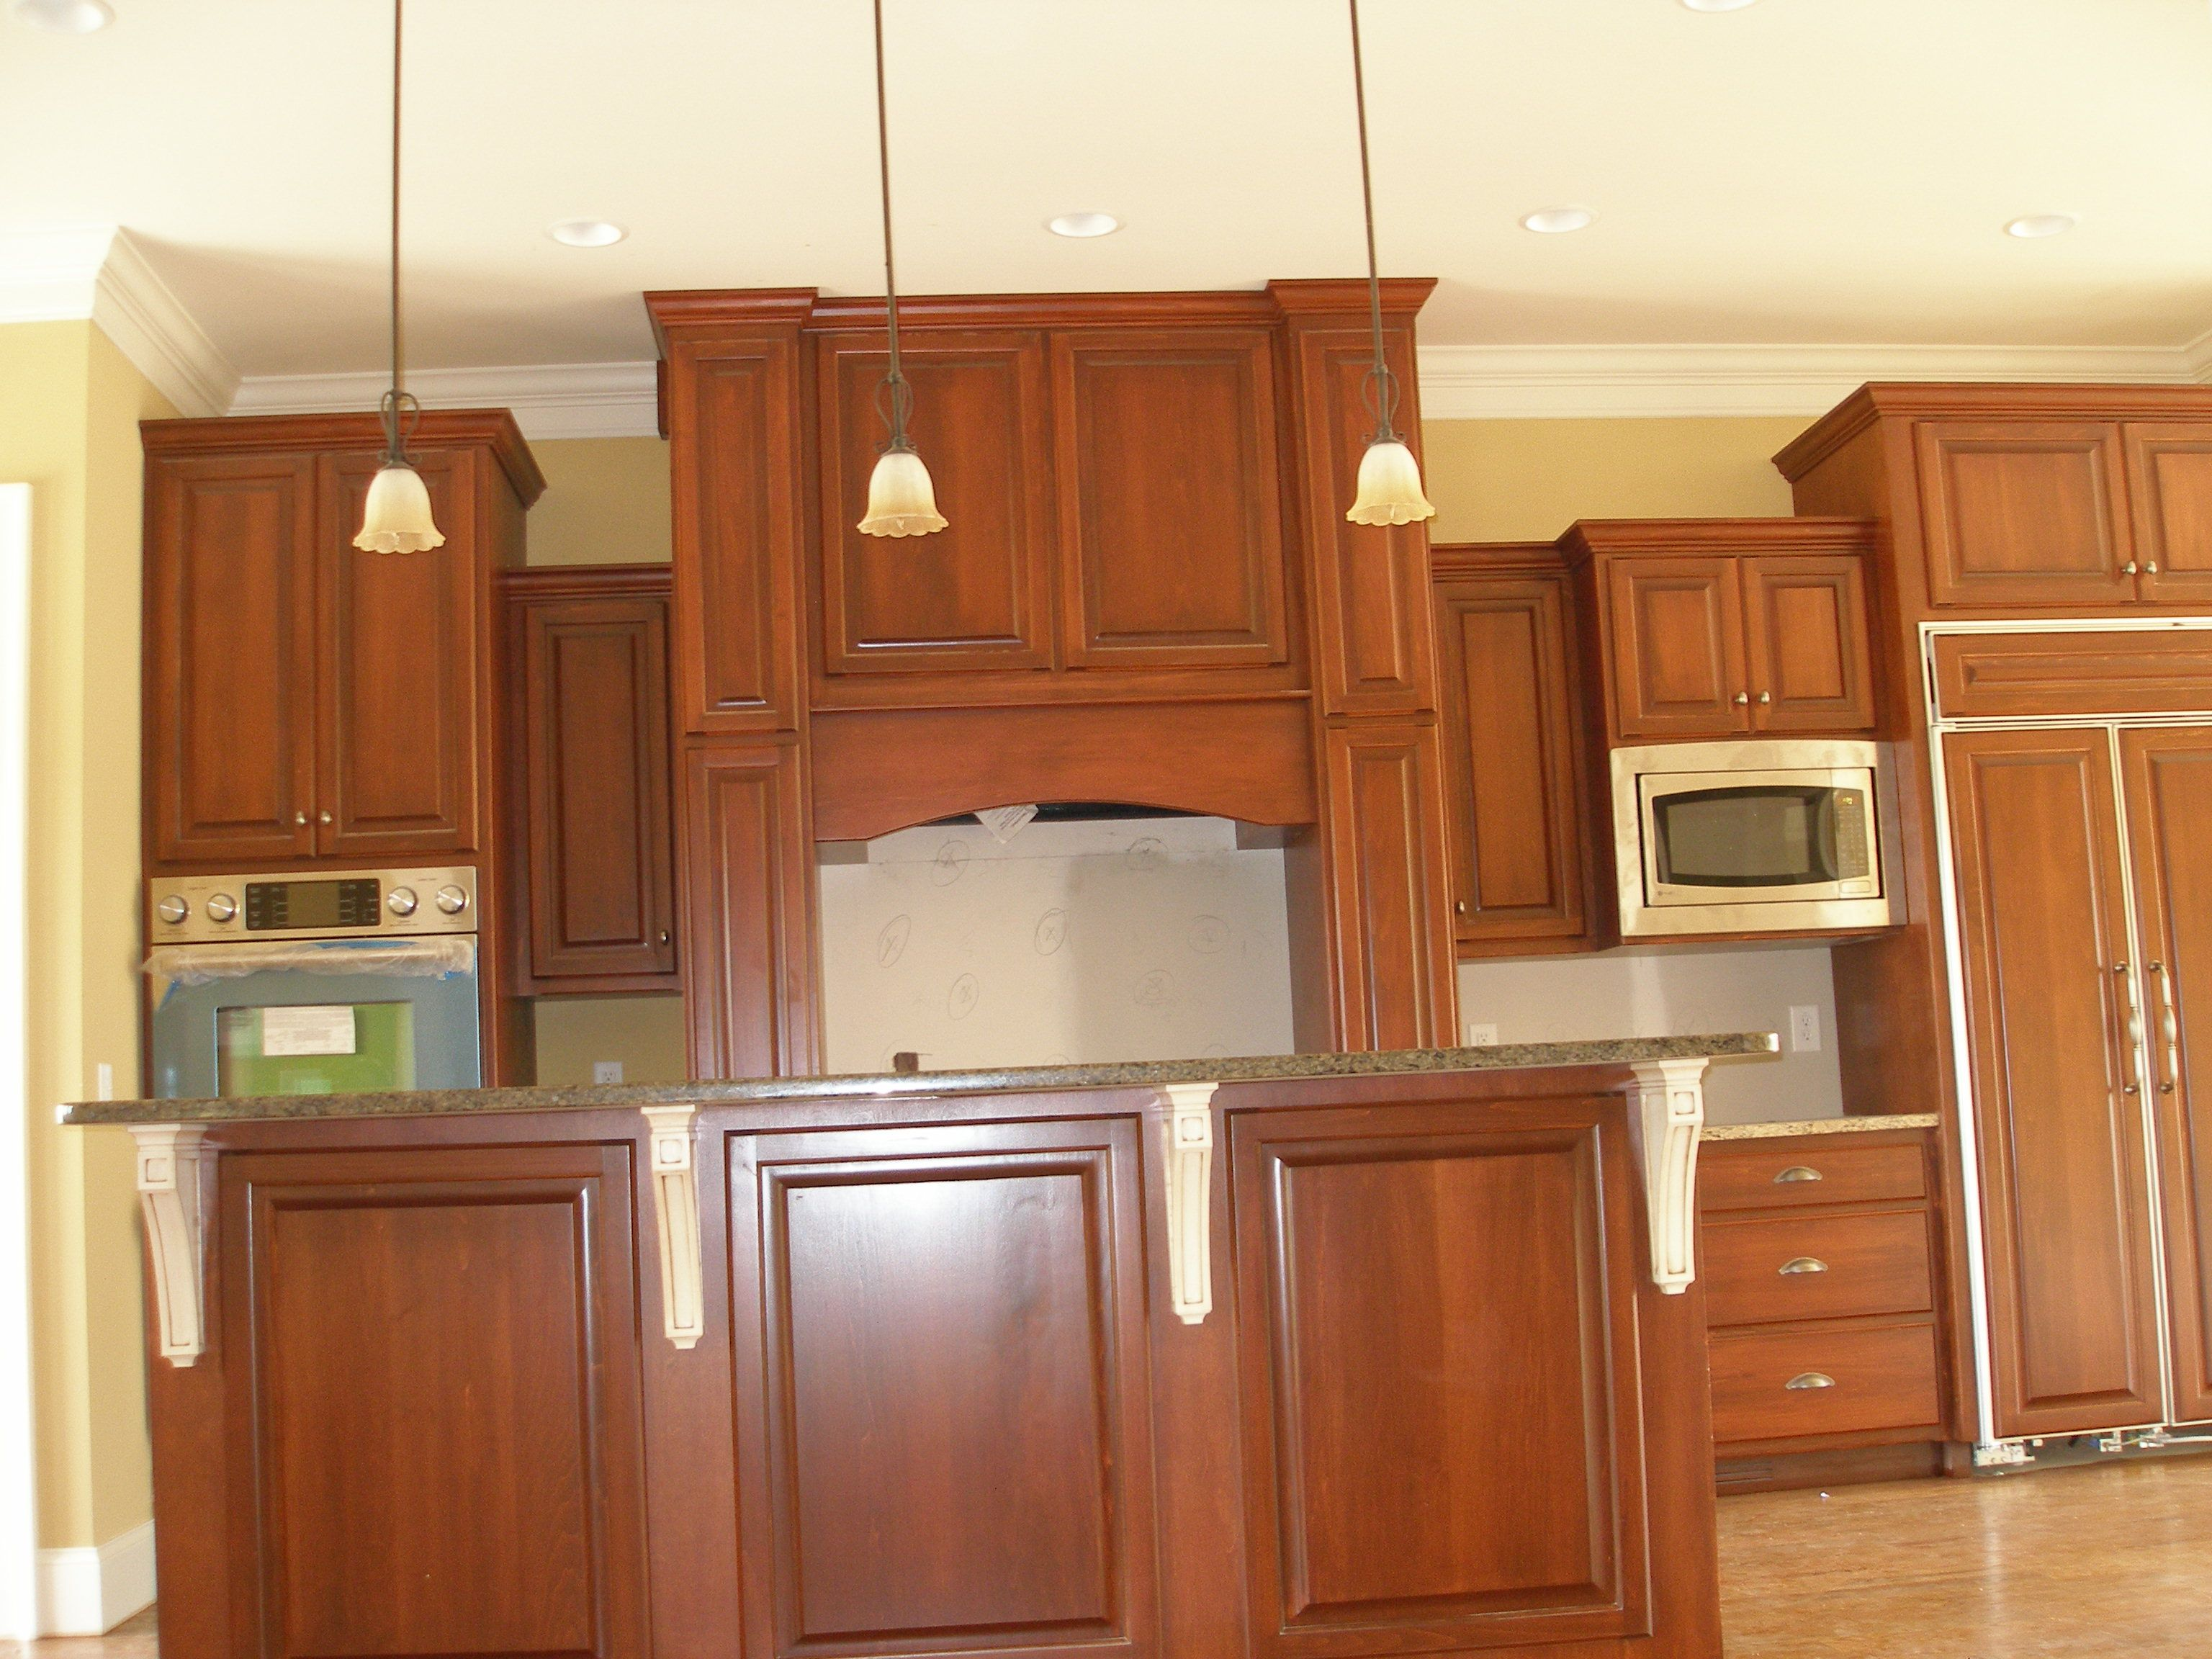 Superb Kitchen Cabinets | Custom Cabinets Atlanta 678 608 3352 McDonough Ga |  Kitchen Cabinets